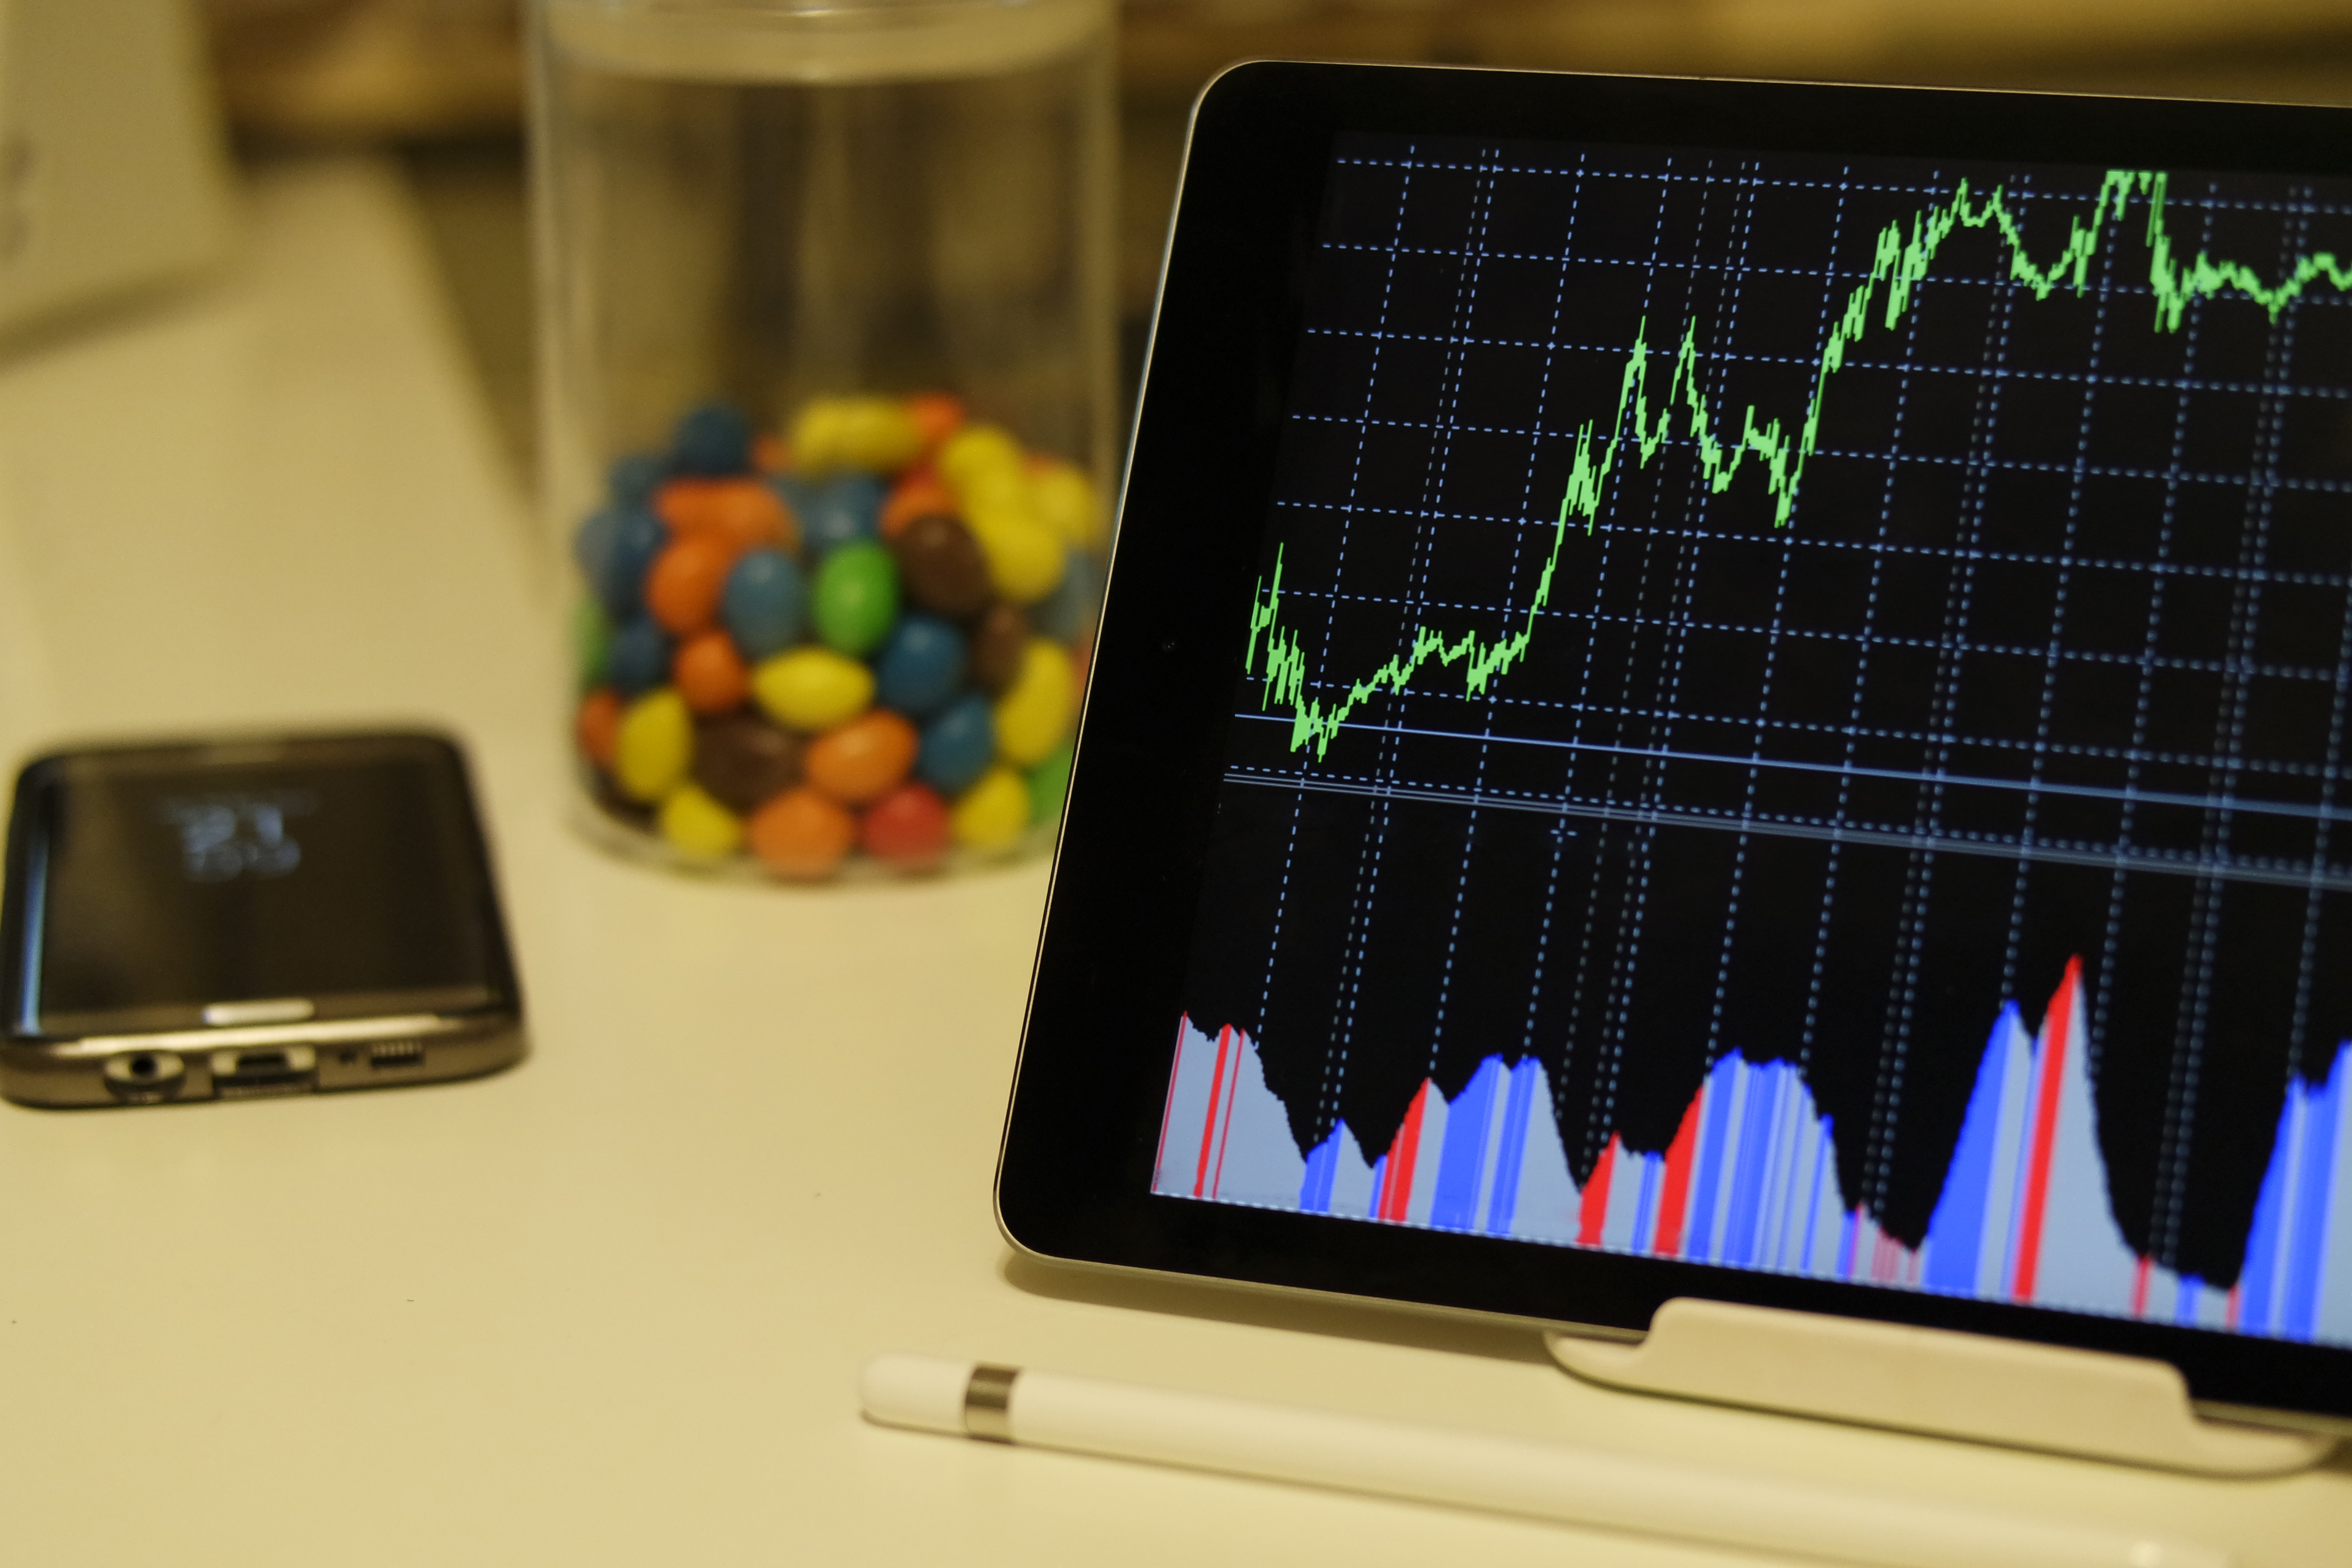 Android Stock Chart Appannual Stock Market Returns Chart: White Android Tablet Turned on Displaying a Graph · Free Stock Photo,Chart